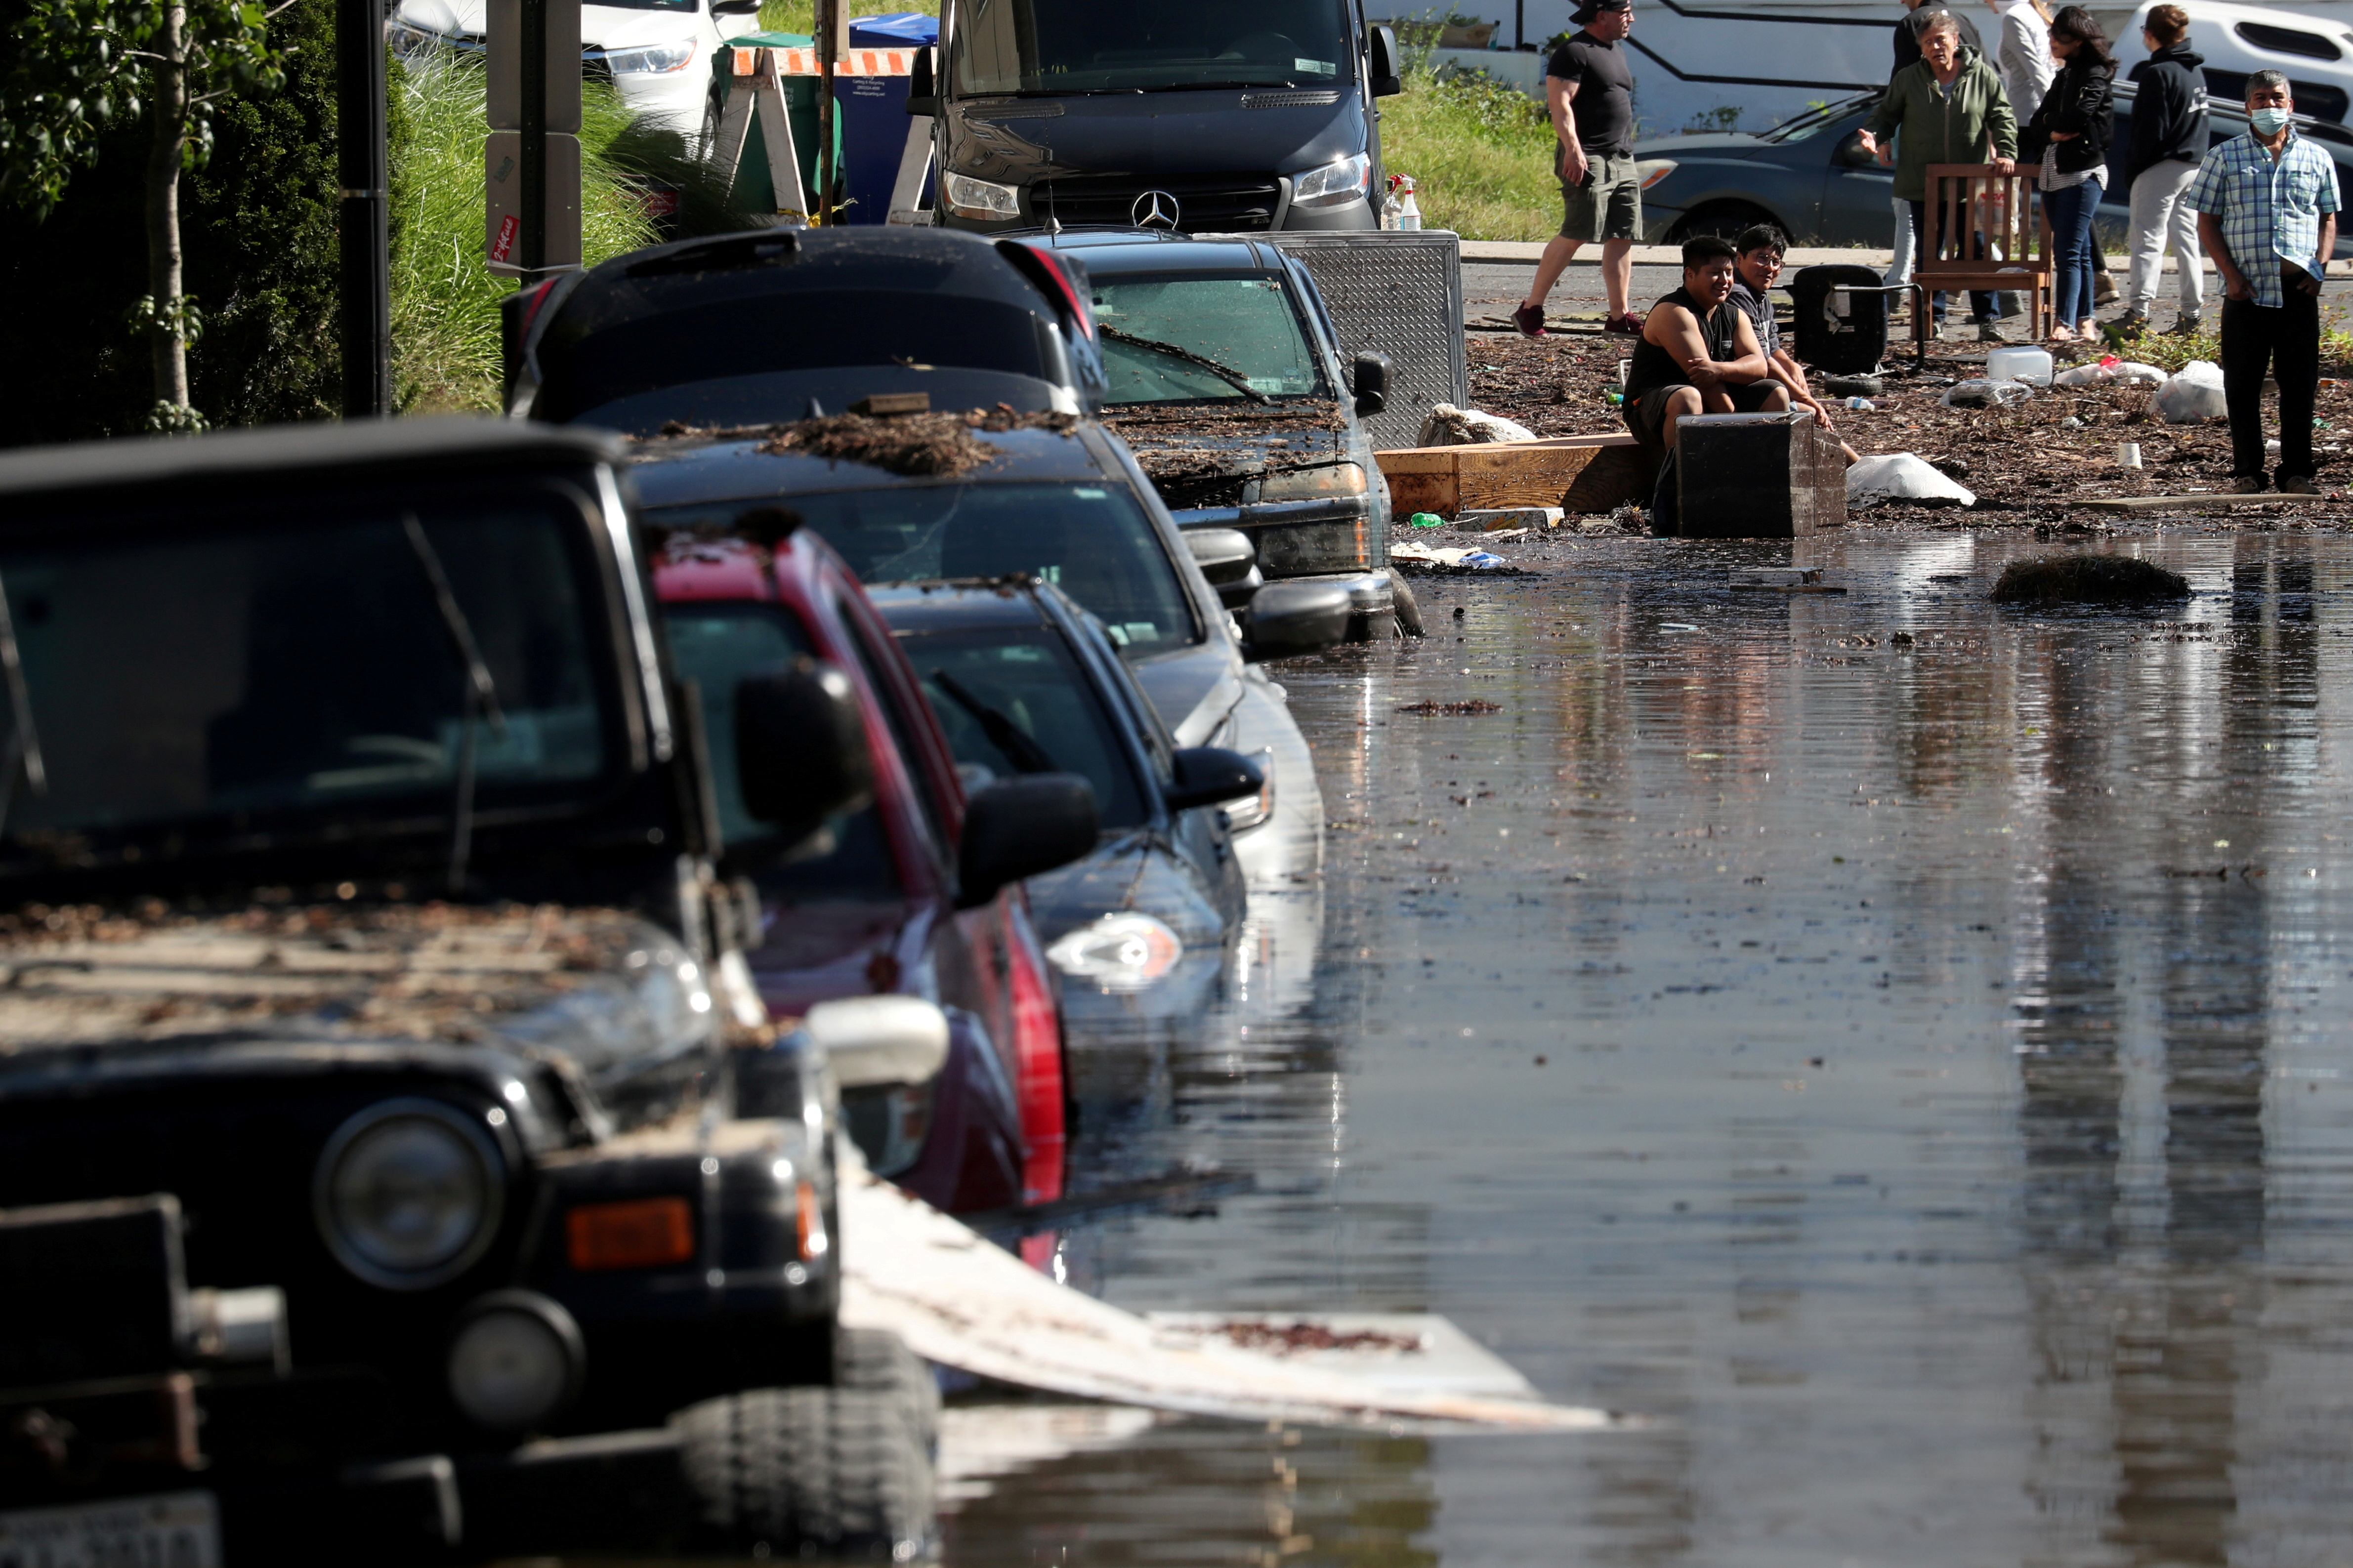 Local residents stand by floodwaters after remnants of Ida brought drenching rain, flash floods and tornadoes to parts of the Northeast in Mamaroneck, New York, September 2. REUTERS/Mike Segar